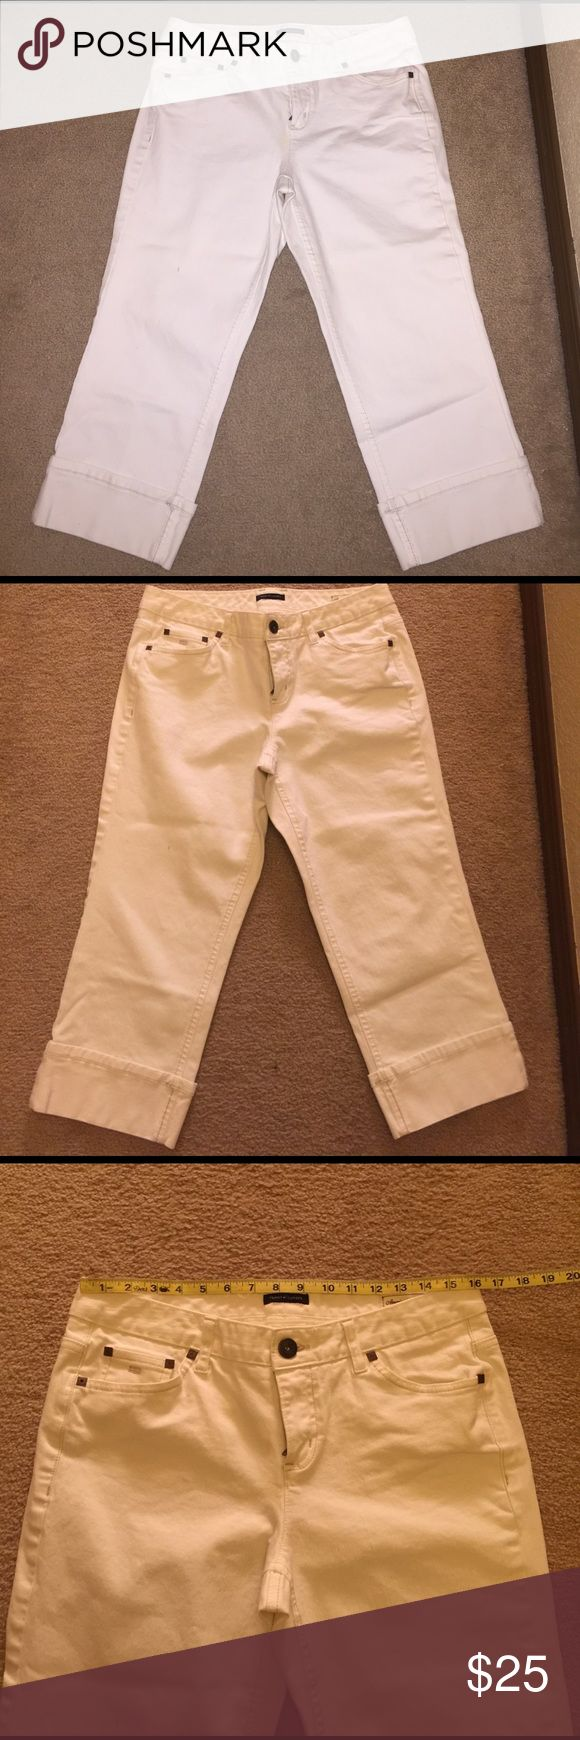 "Tommy Hilfiger cropped jeans ✨OPEN TO OFFERS, JUST SUBMIT YOUR BEST OFFER THROUGH THE ""OFFER"" option OR BUNDLE FOR A DISCOUNT & ONE SHIPPING COST 😃✨.   🚨TREND ALERT! White cropped jeans for spring/summer! Tommy Hilfiger cuffed cropped jeans in excellent, perfect condition 👌🏽(worn once) Size 10, inseam 22"" ... they do have some stretch for a great fit 👍🏽 Tommy Hilfiger Jeans Ankle & Cropped"